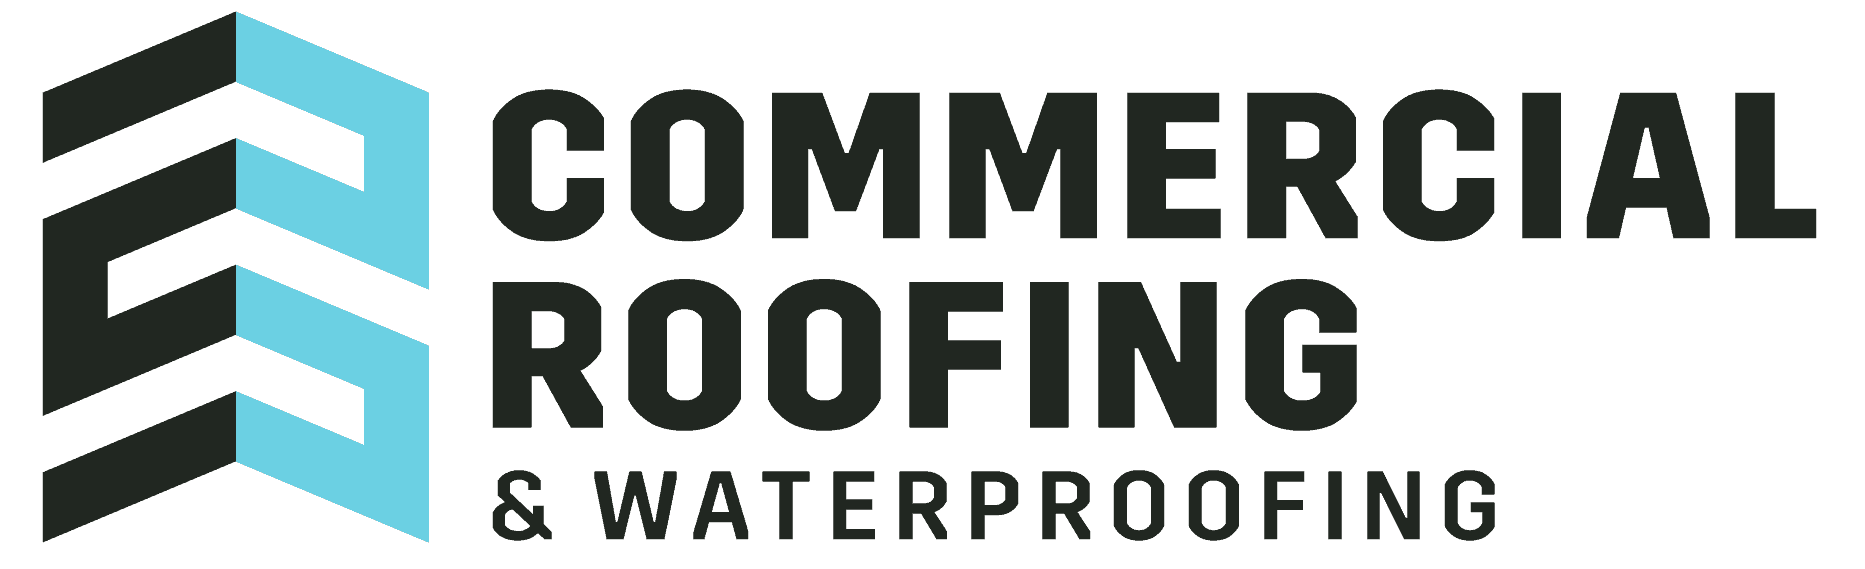 Hawaii Commercial Roofing and Waterproofing